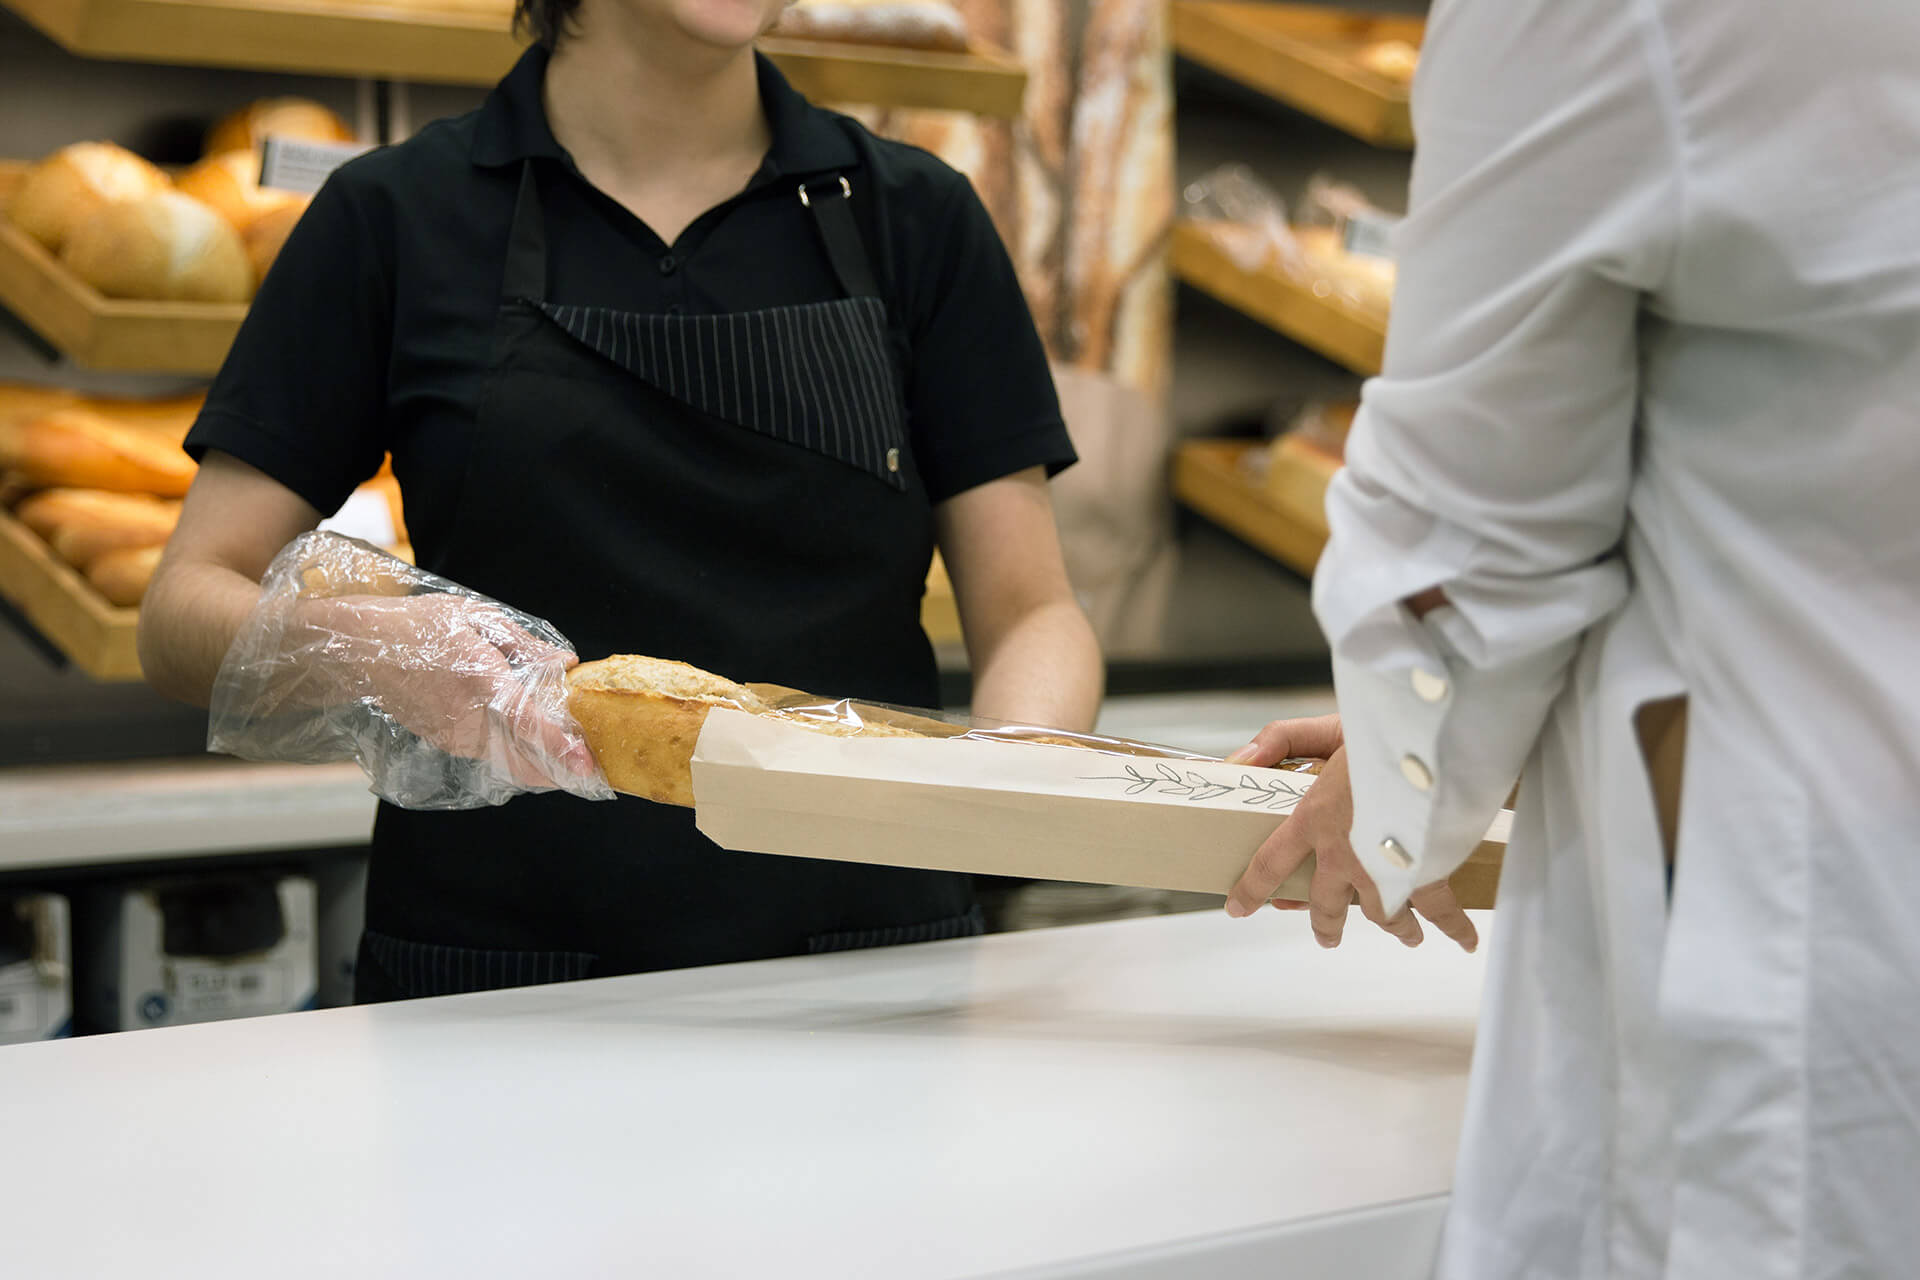 Baker giving a bread to a customer / Boulangère donnant un pain à un client